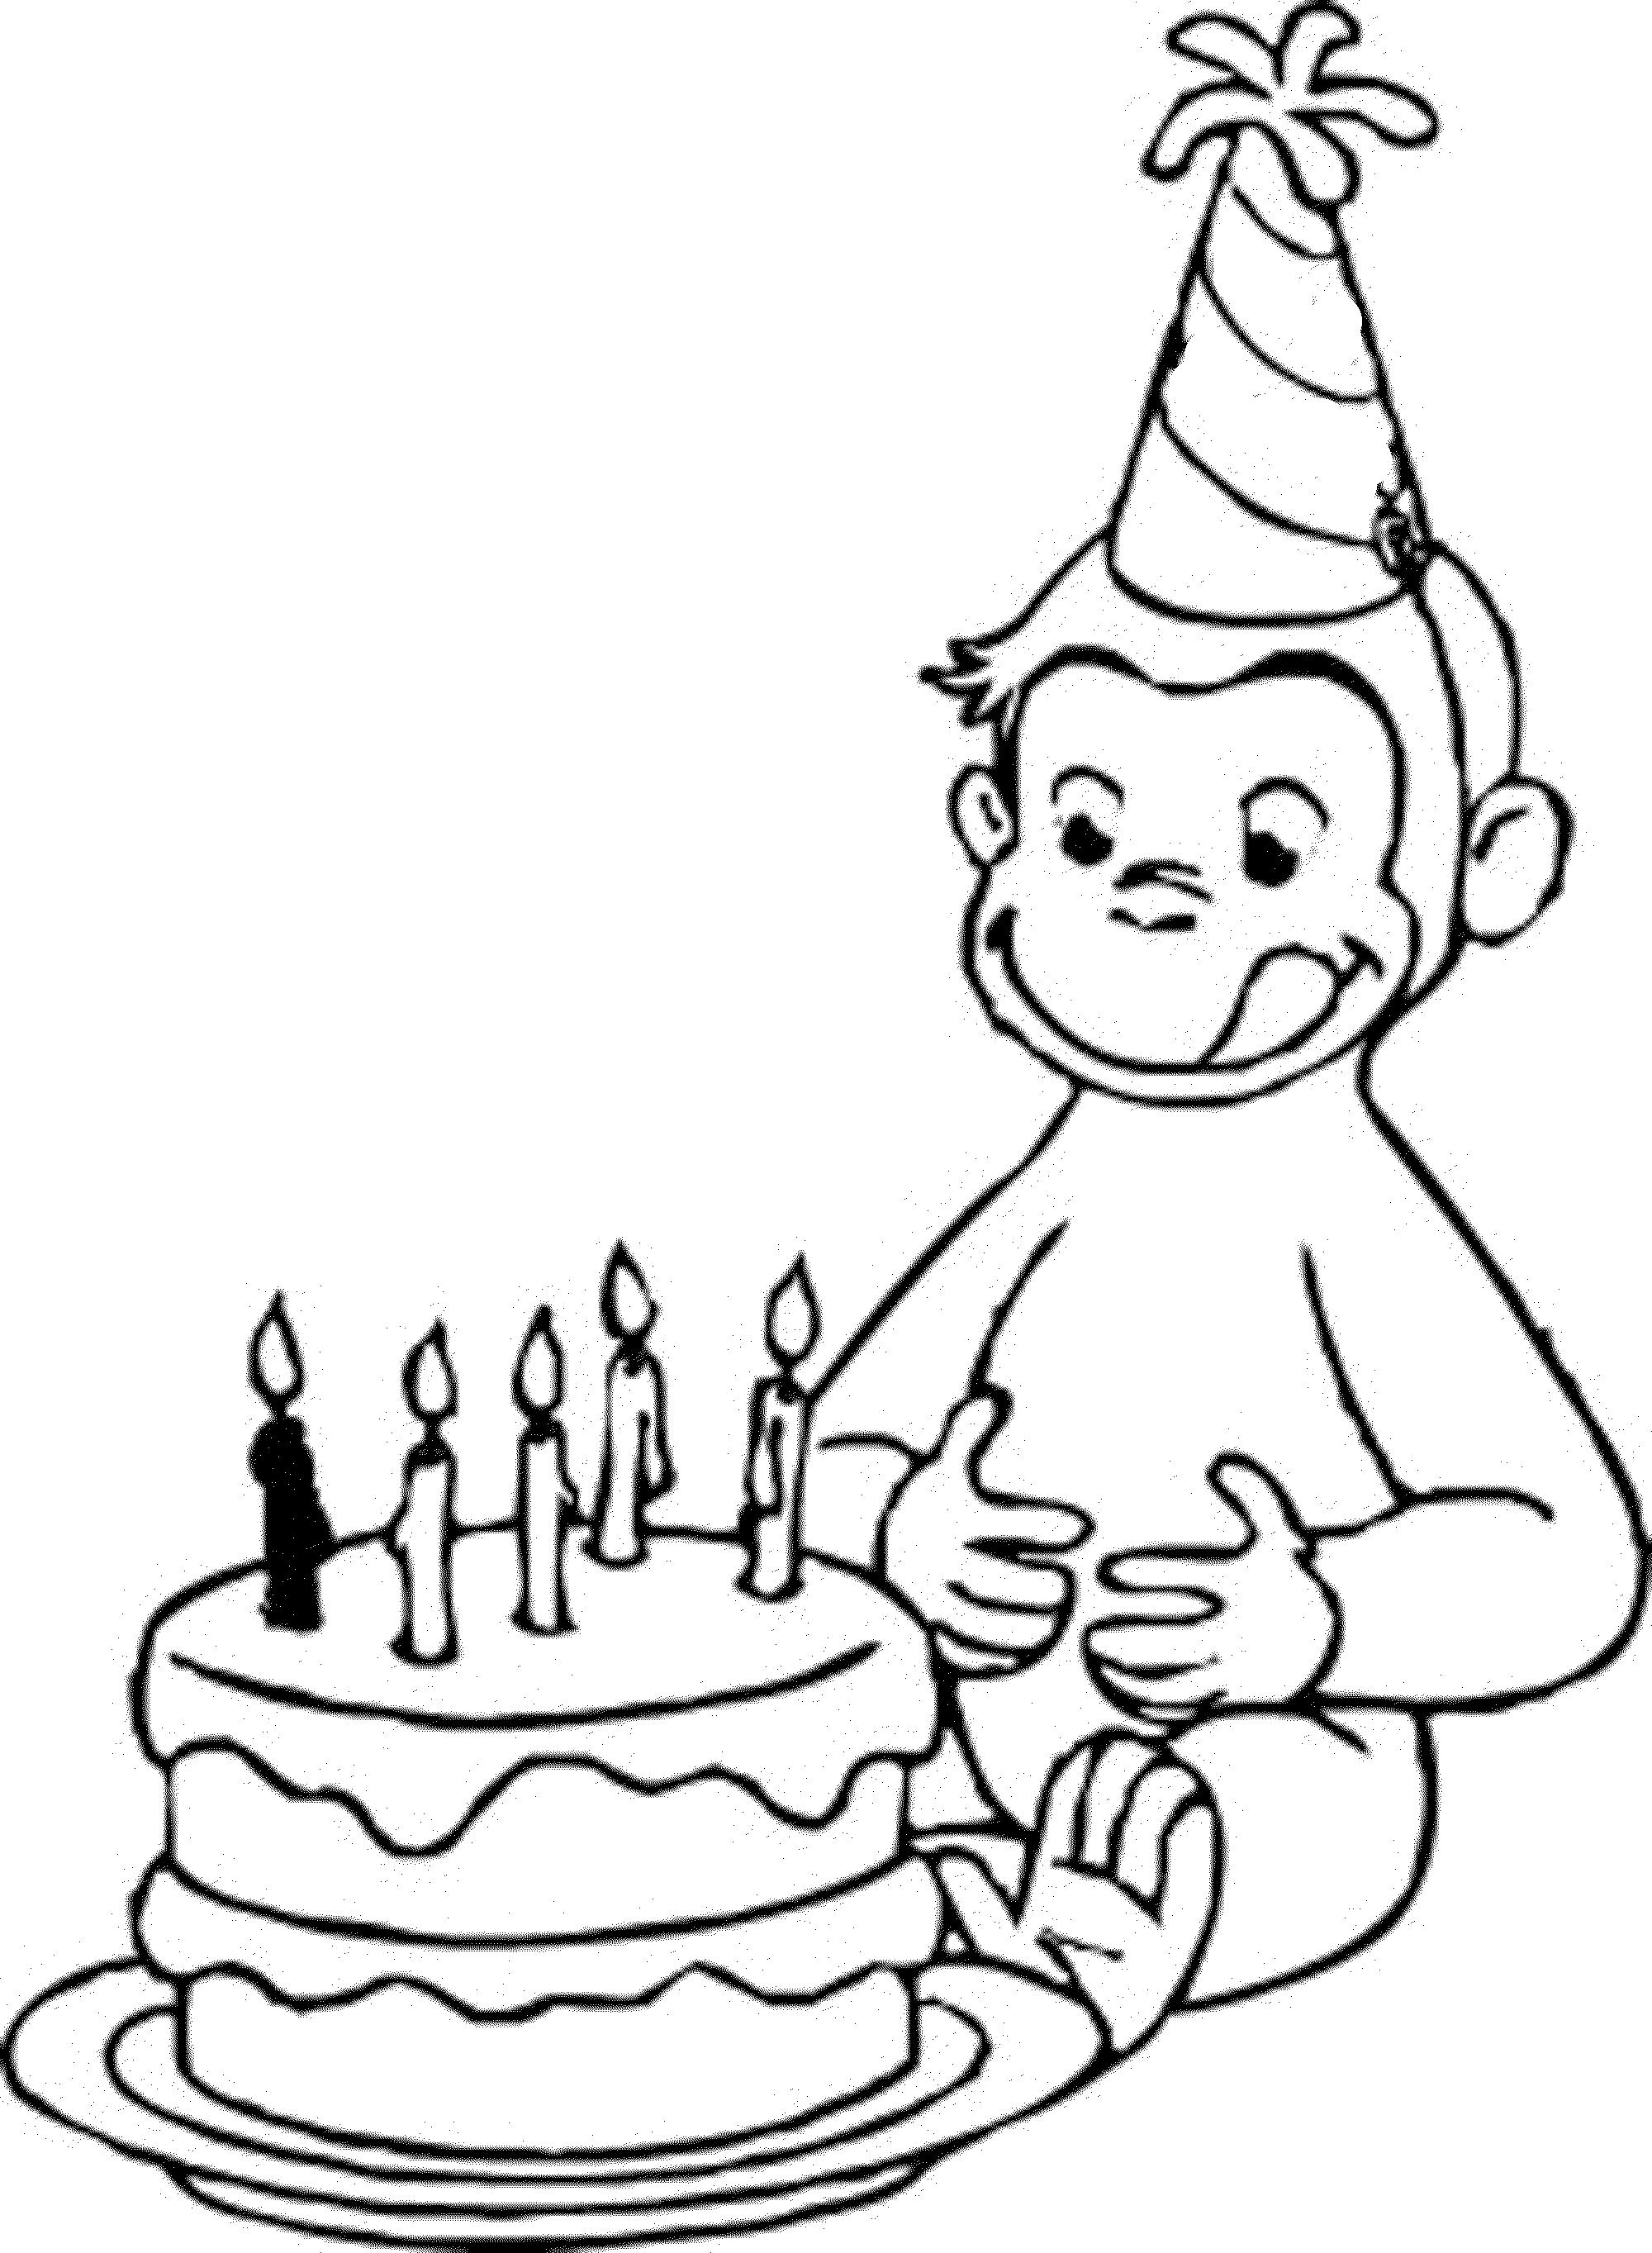 happy birthday coloring pages disney ; happy-birthday-coloring-pages-for-kids-12